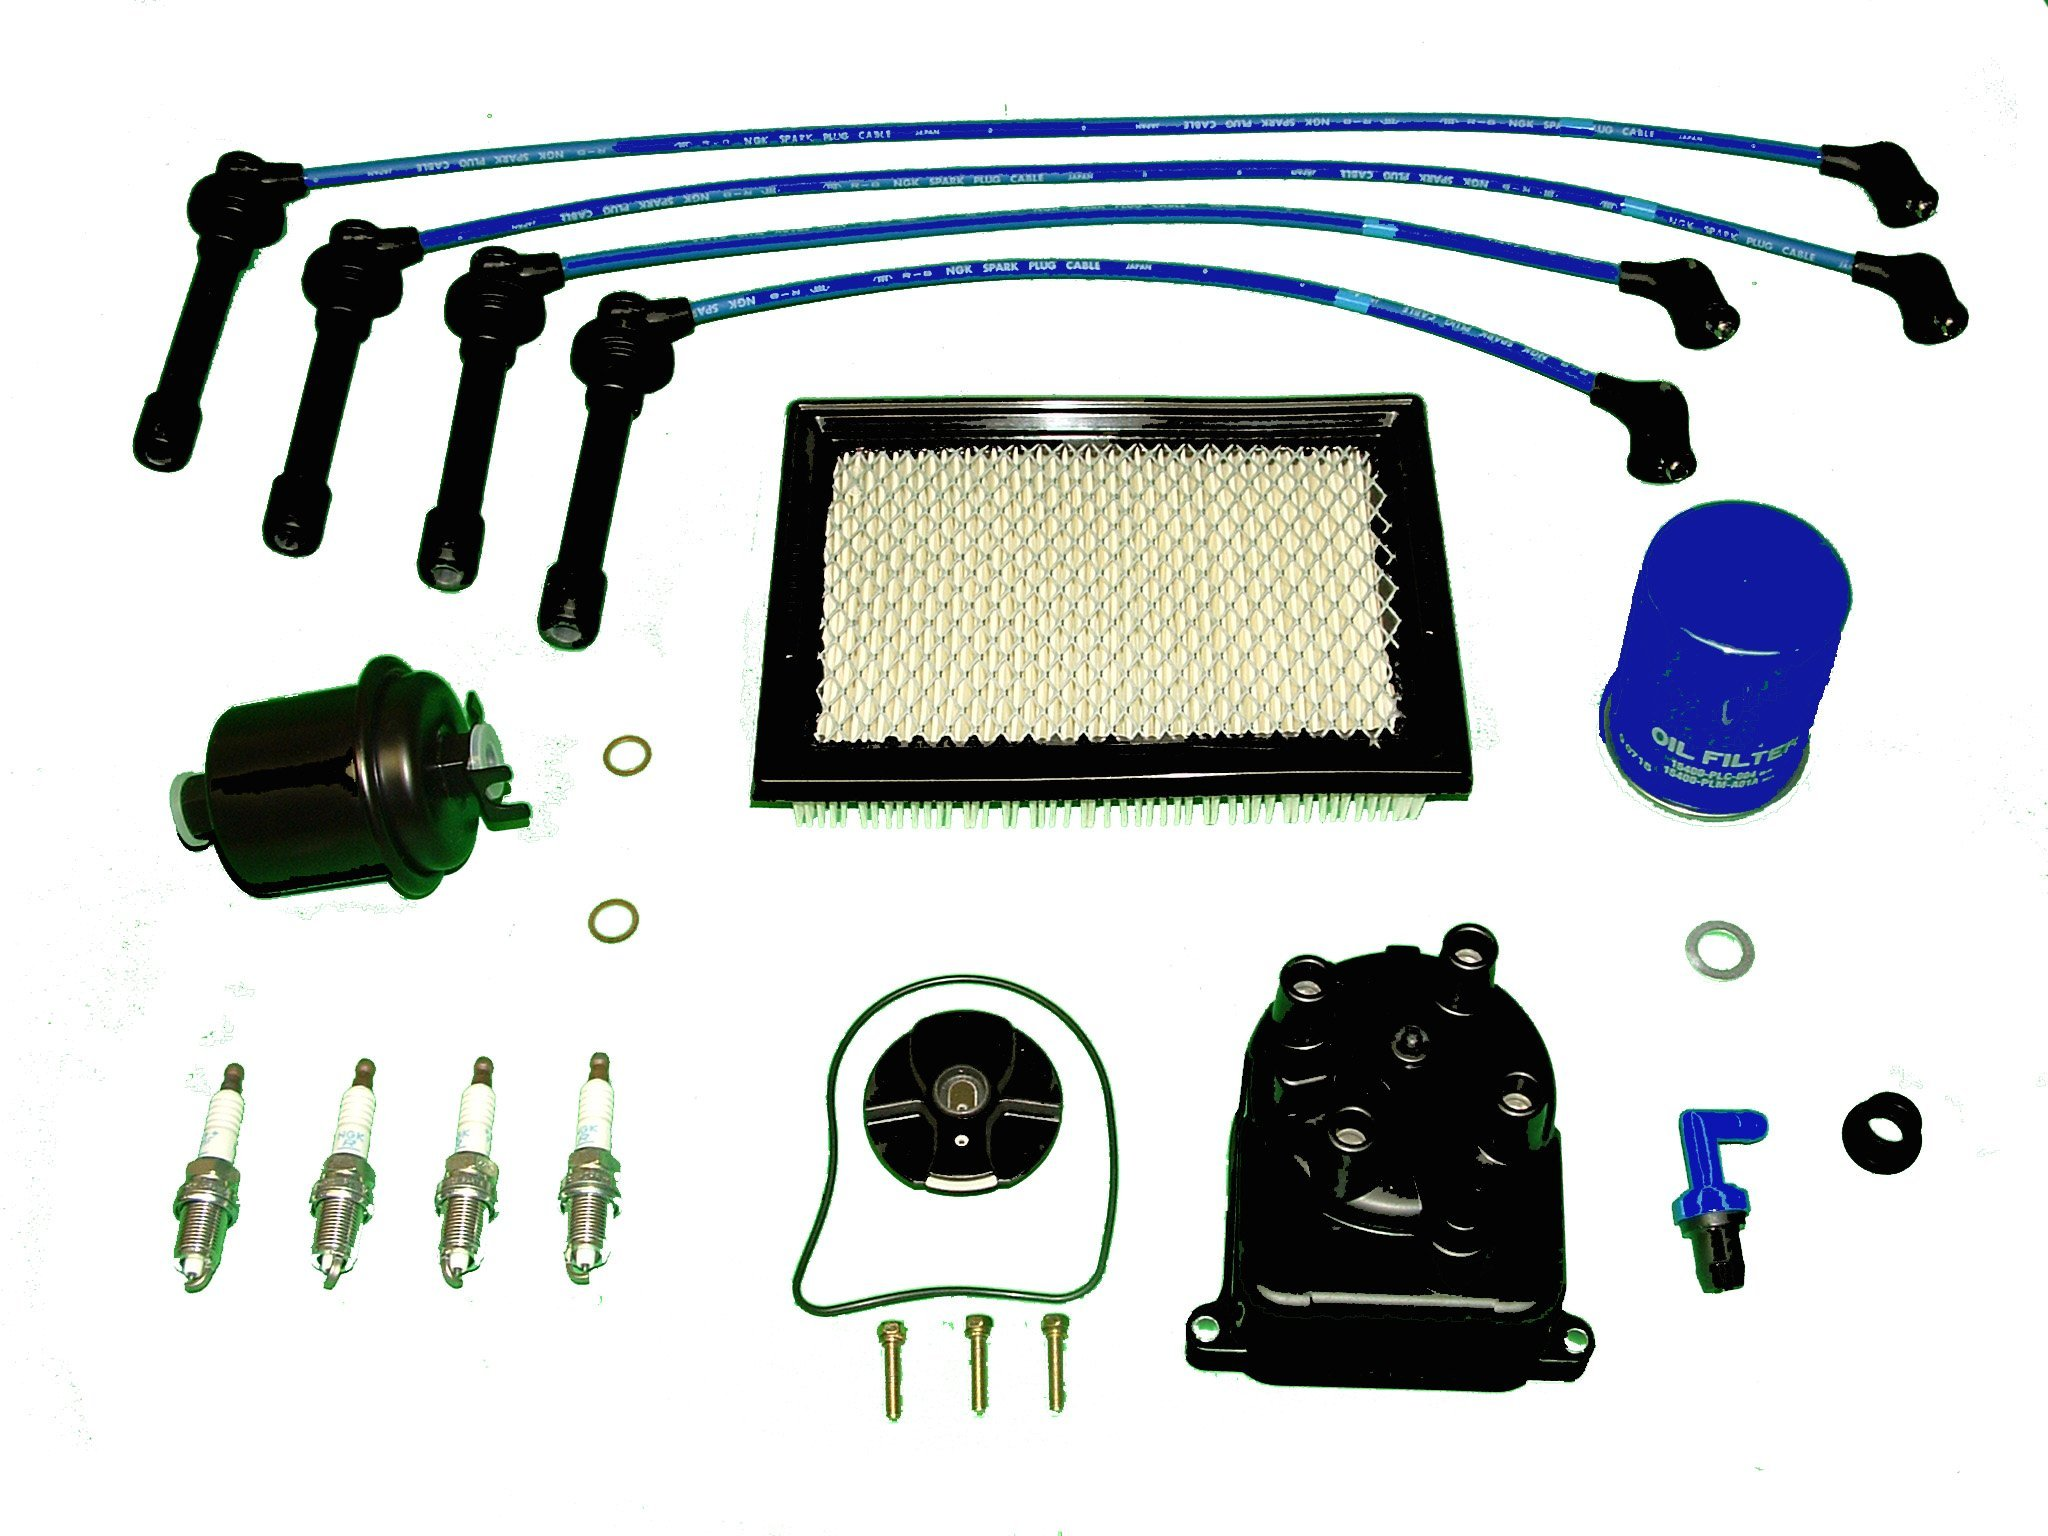 Tune Up Kit Replacement For Honda Civic CX DX LX 1996 to 2000 1.6L by TBK Timing Belt Kit